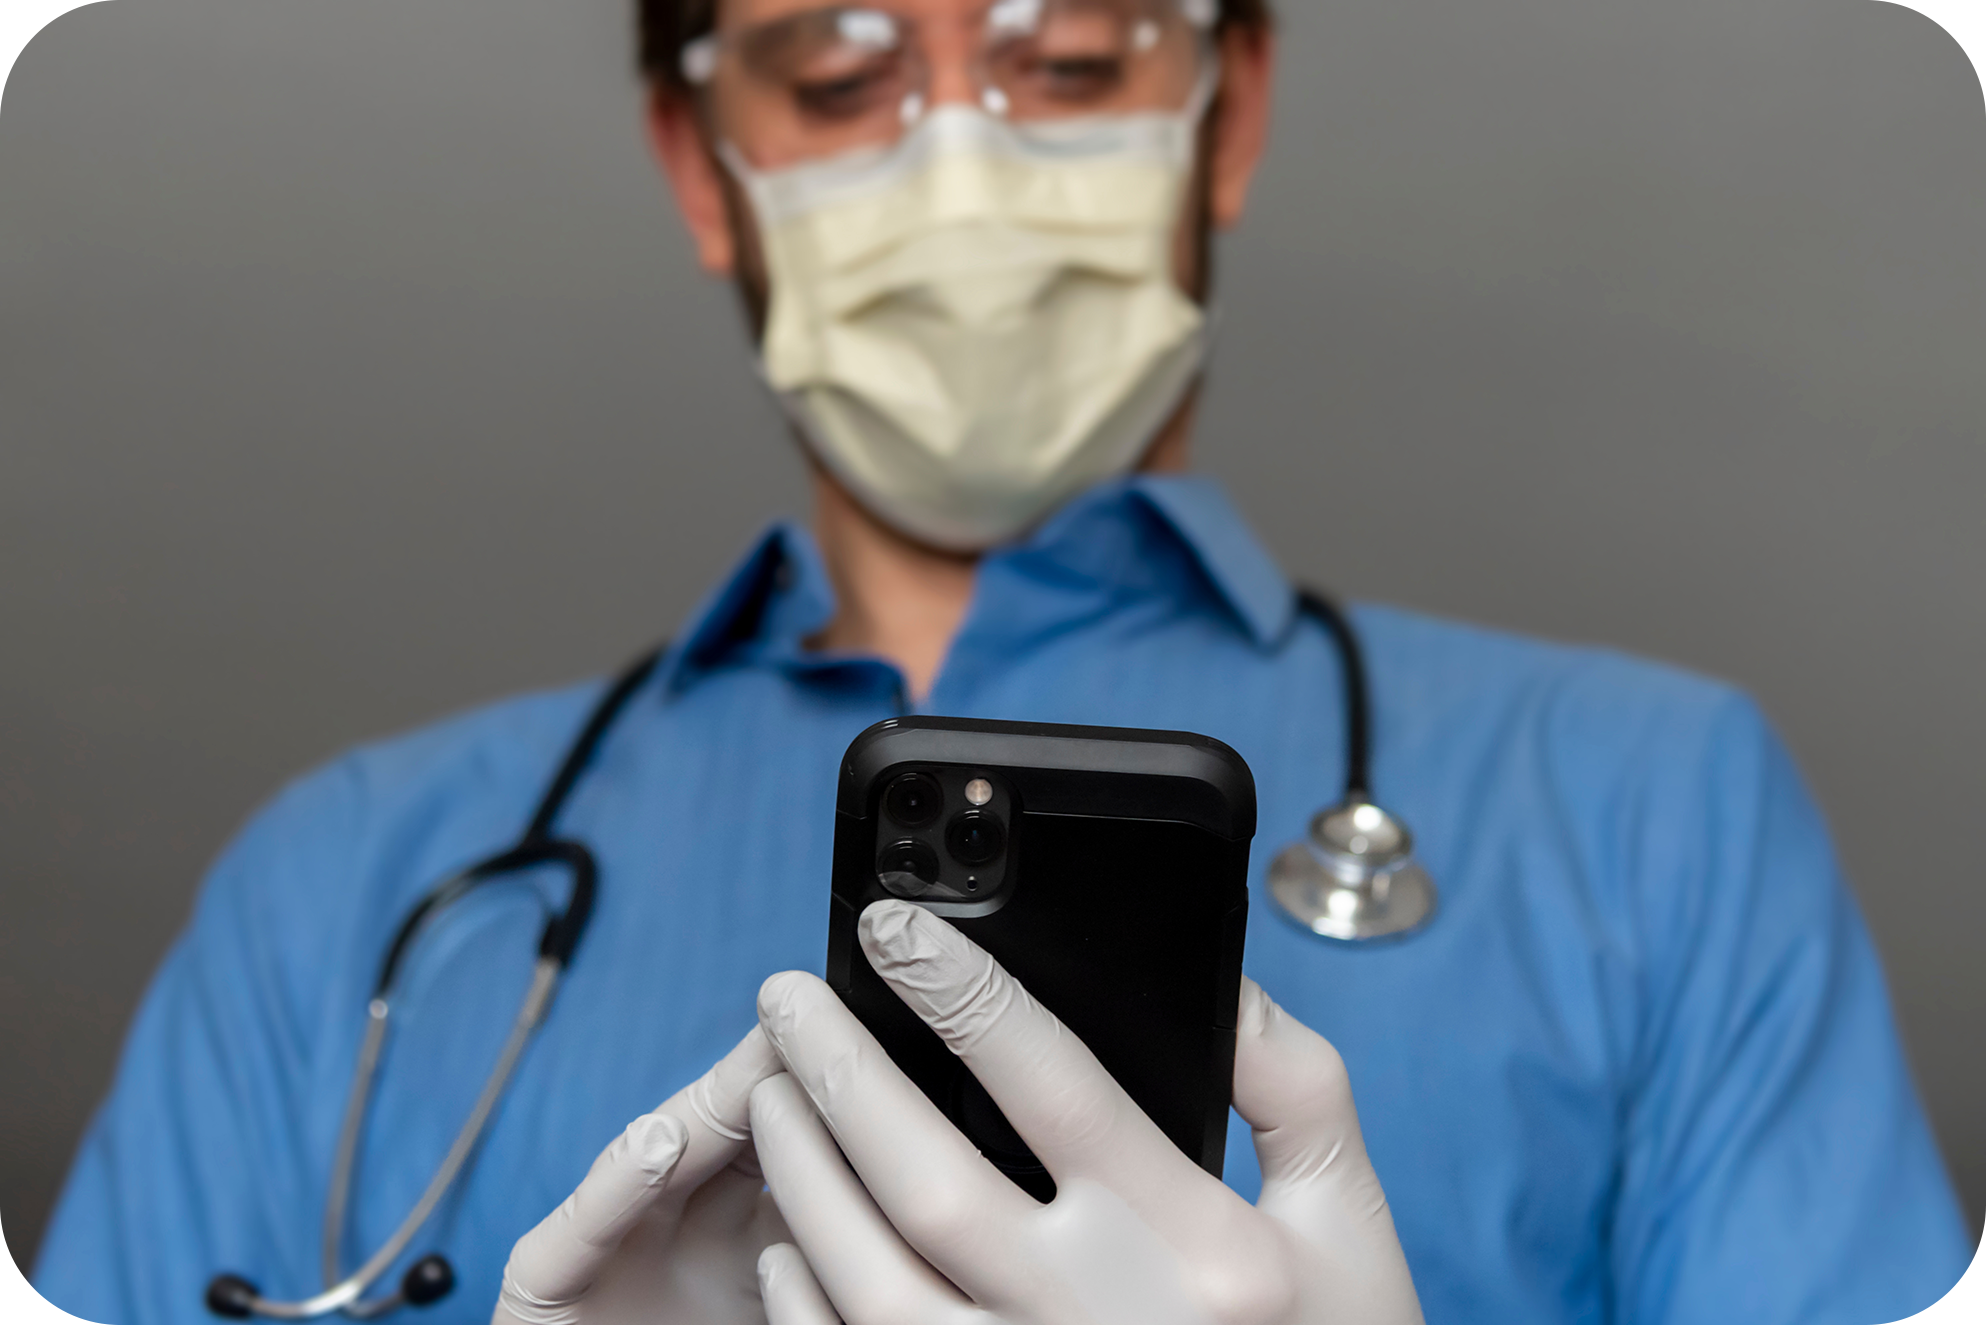 Resident holding mobile phone reviewing surgical training